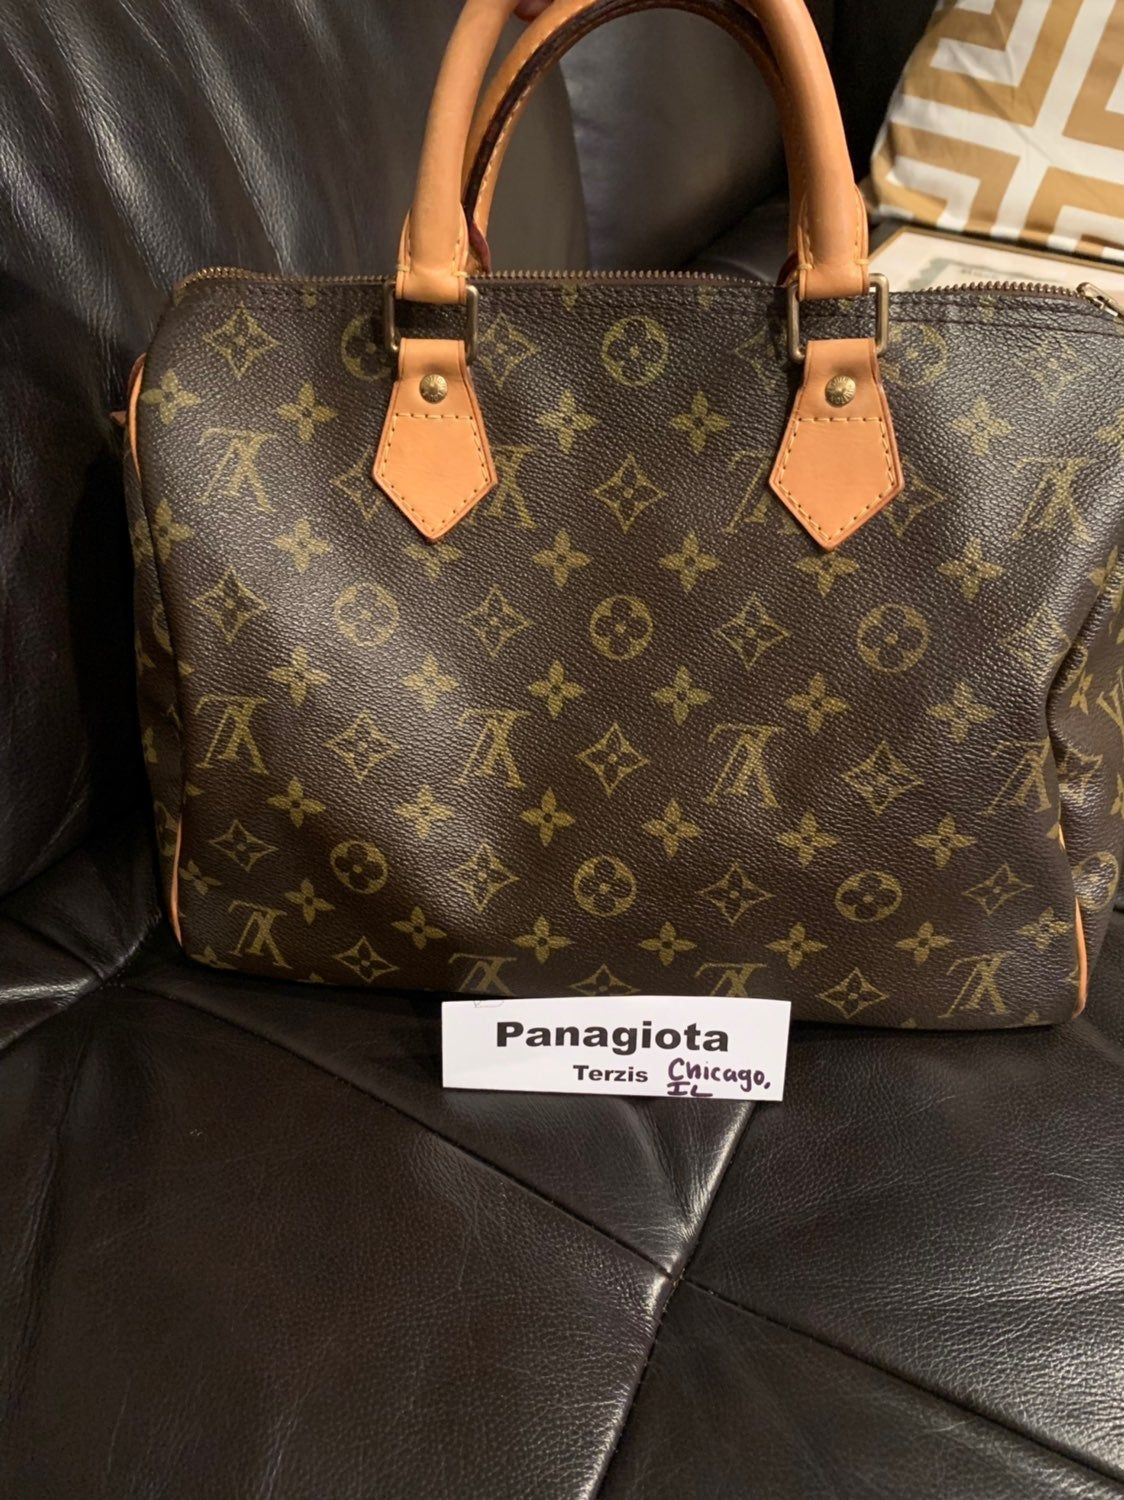 Preloved Authentic Lv Speedy Bag With Dust Bag And Copy Of The Receipt Date Code Aa4017 Abou Louis Vuitton Louis Vuitton Speedy 30 Louis Vuitton Speedy Bag